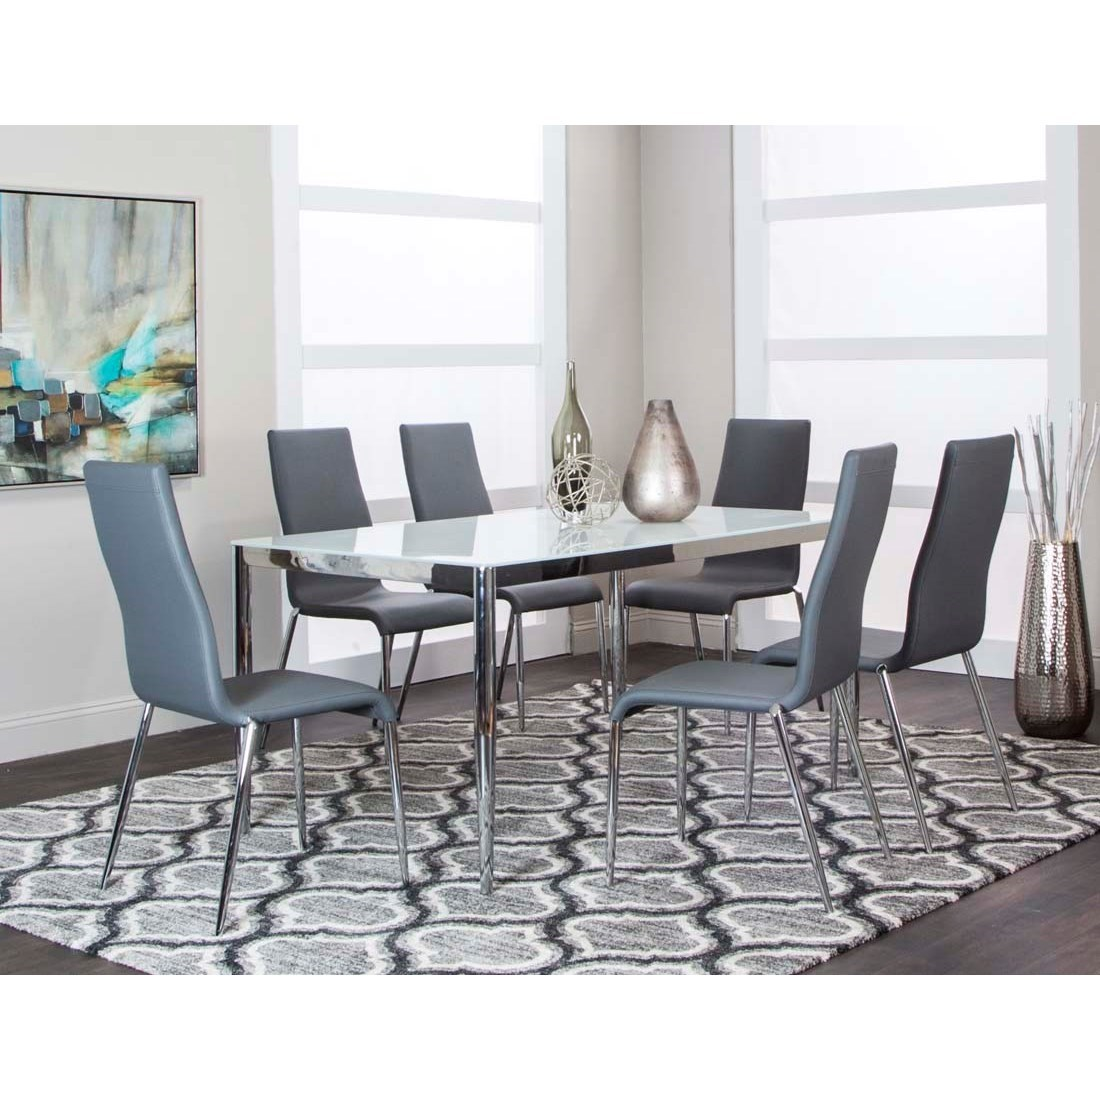 Atom 7-Piece Table and Chair Set by Cramco, Inc at Value City Furniture